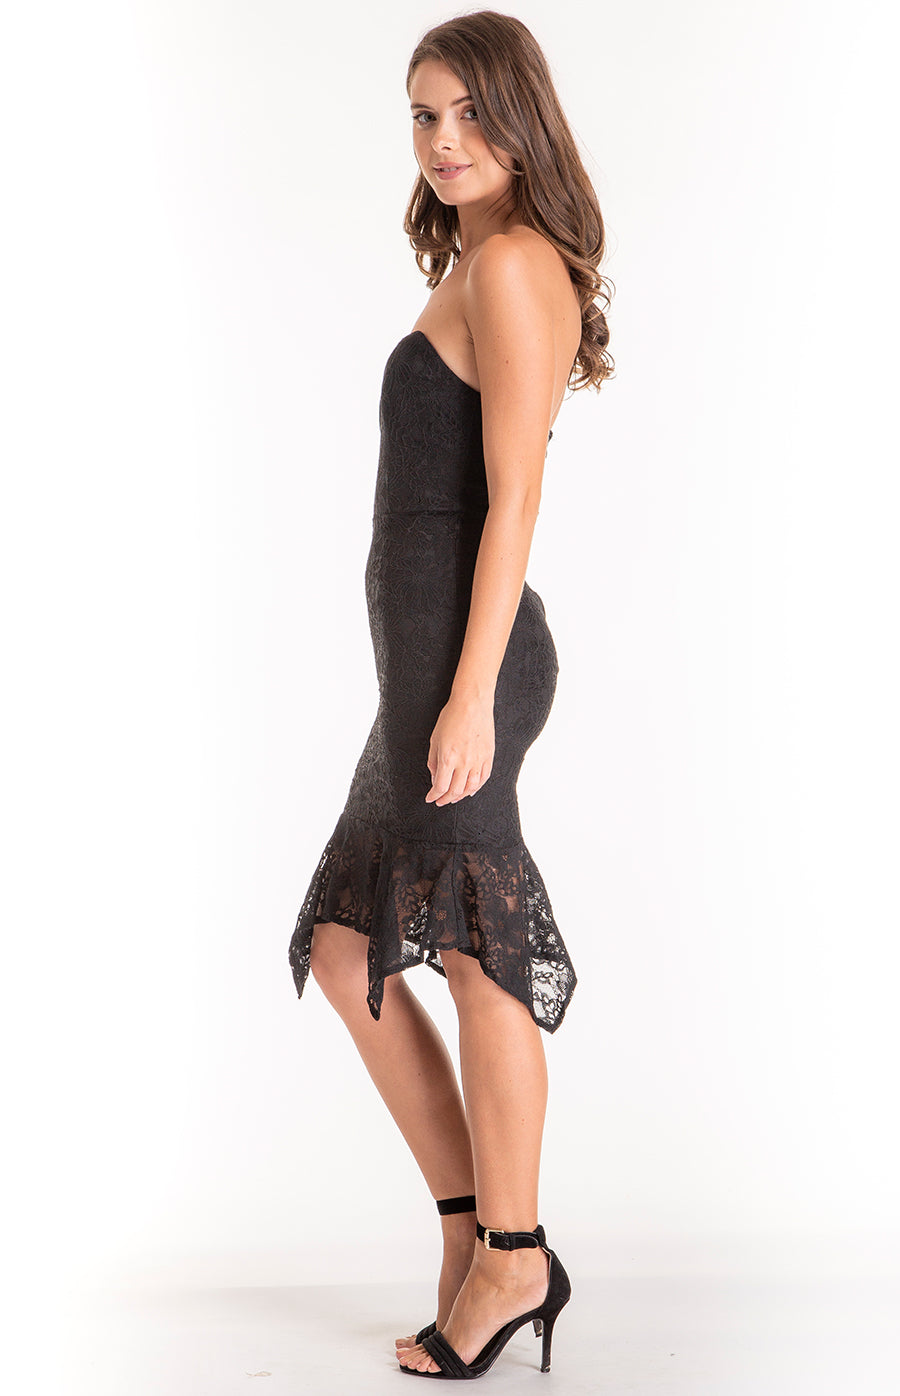 FAITHFULL BLACK LACE DRESS - Saphyra Boutique